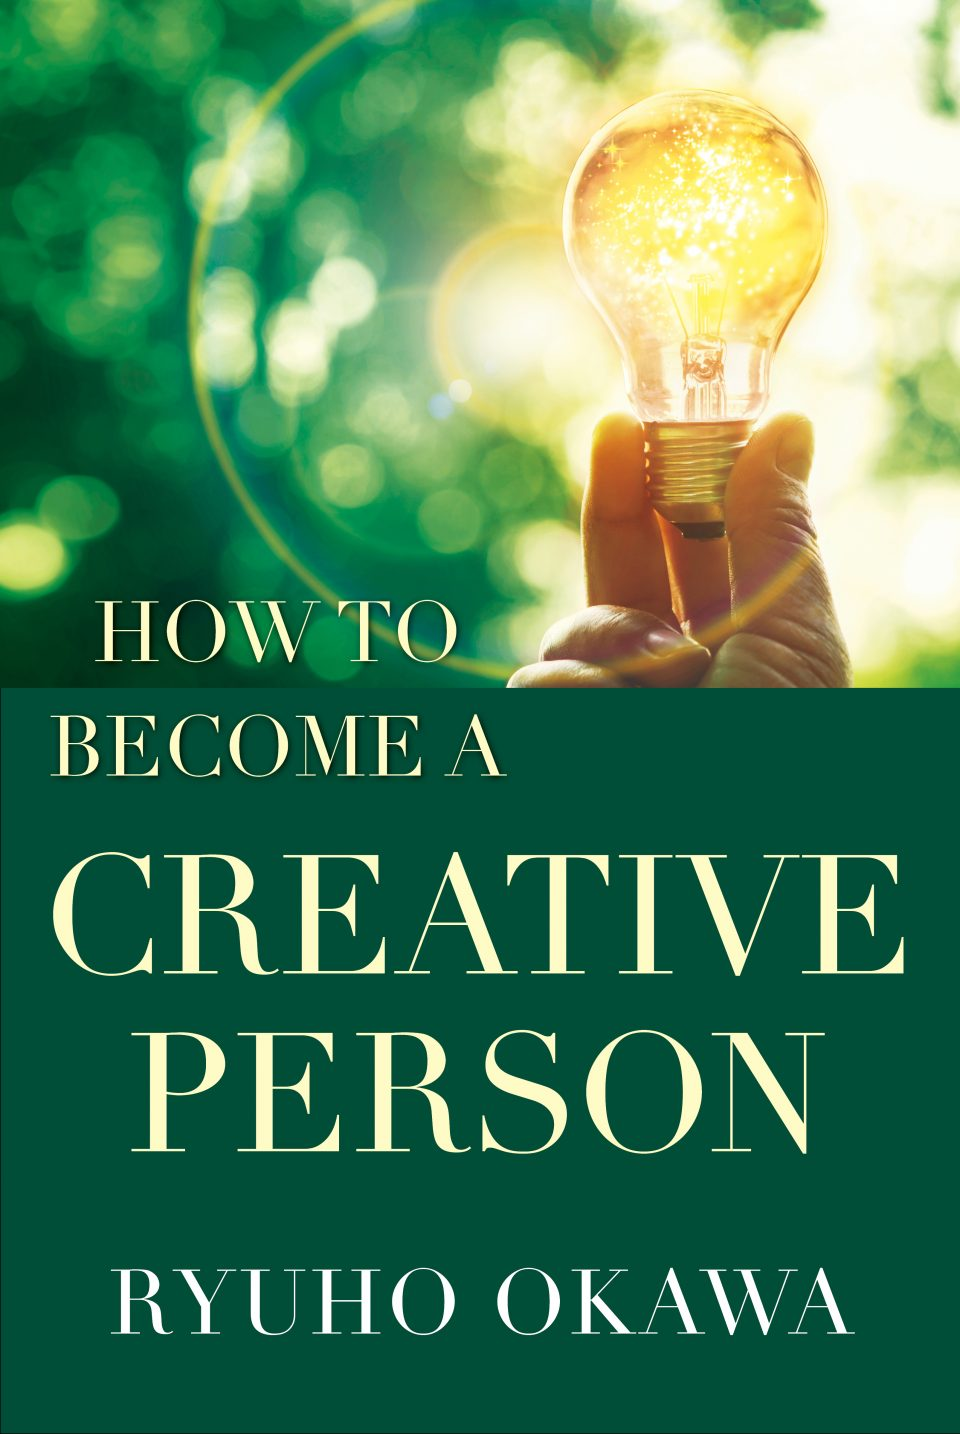 How to Become a Creative Person is out now!